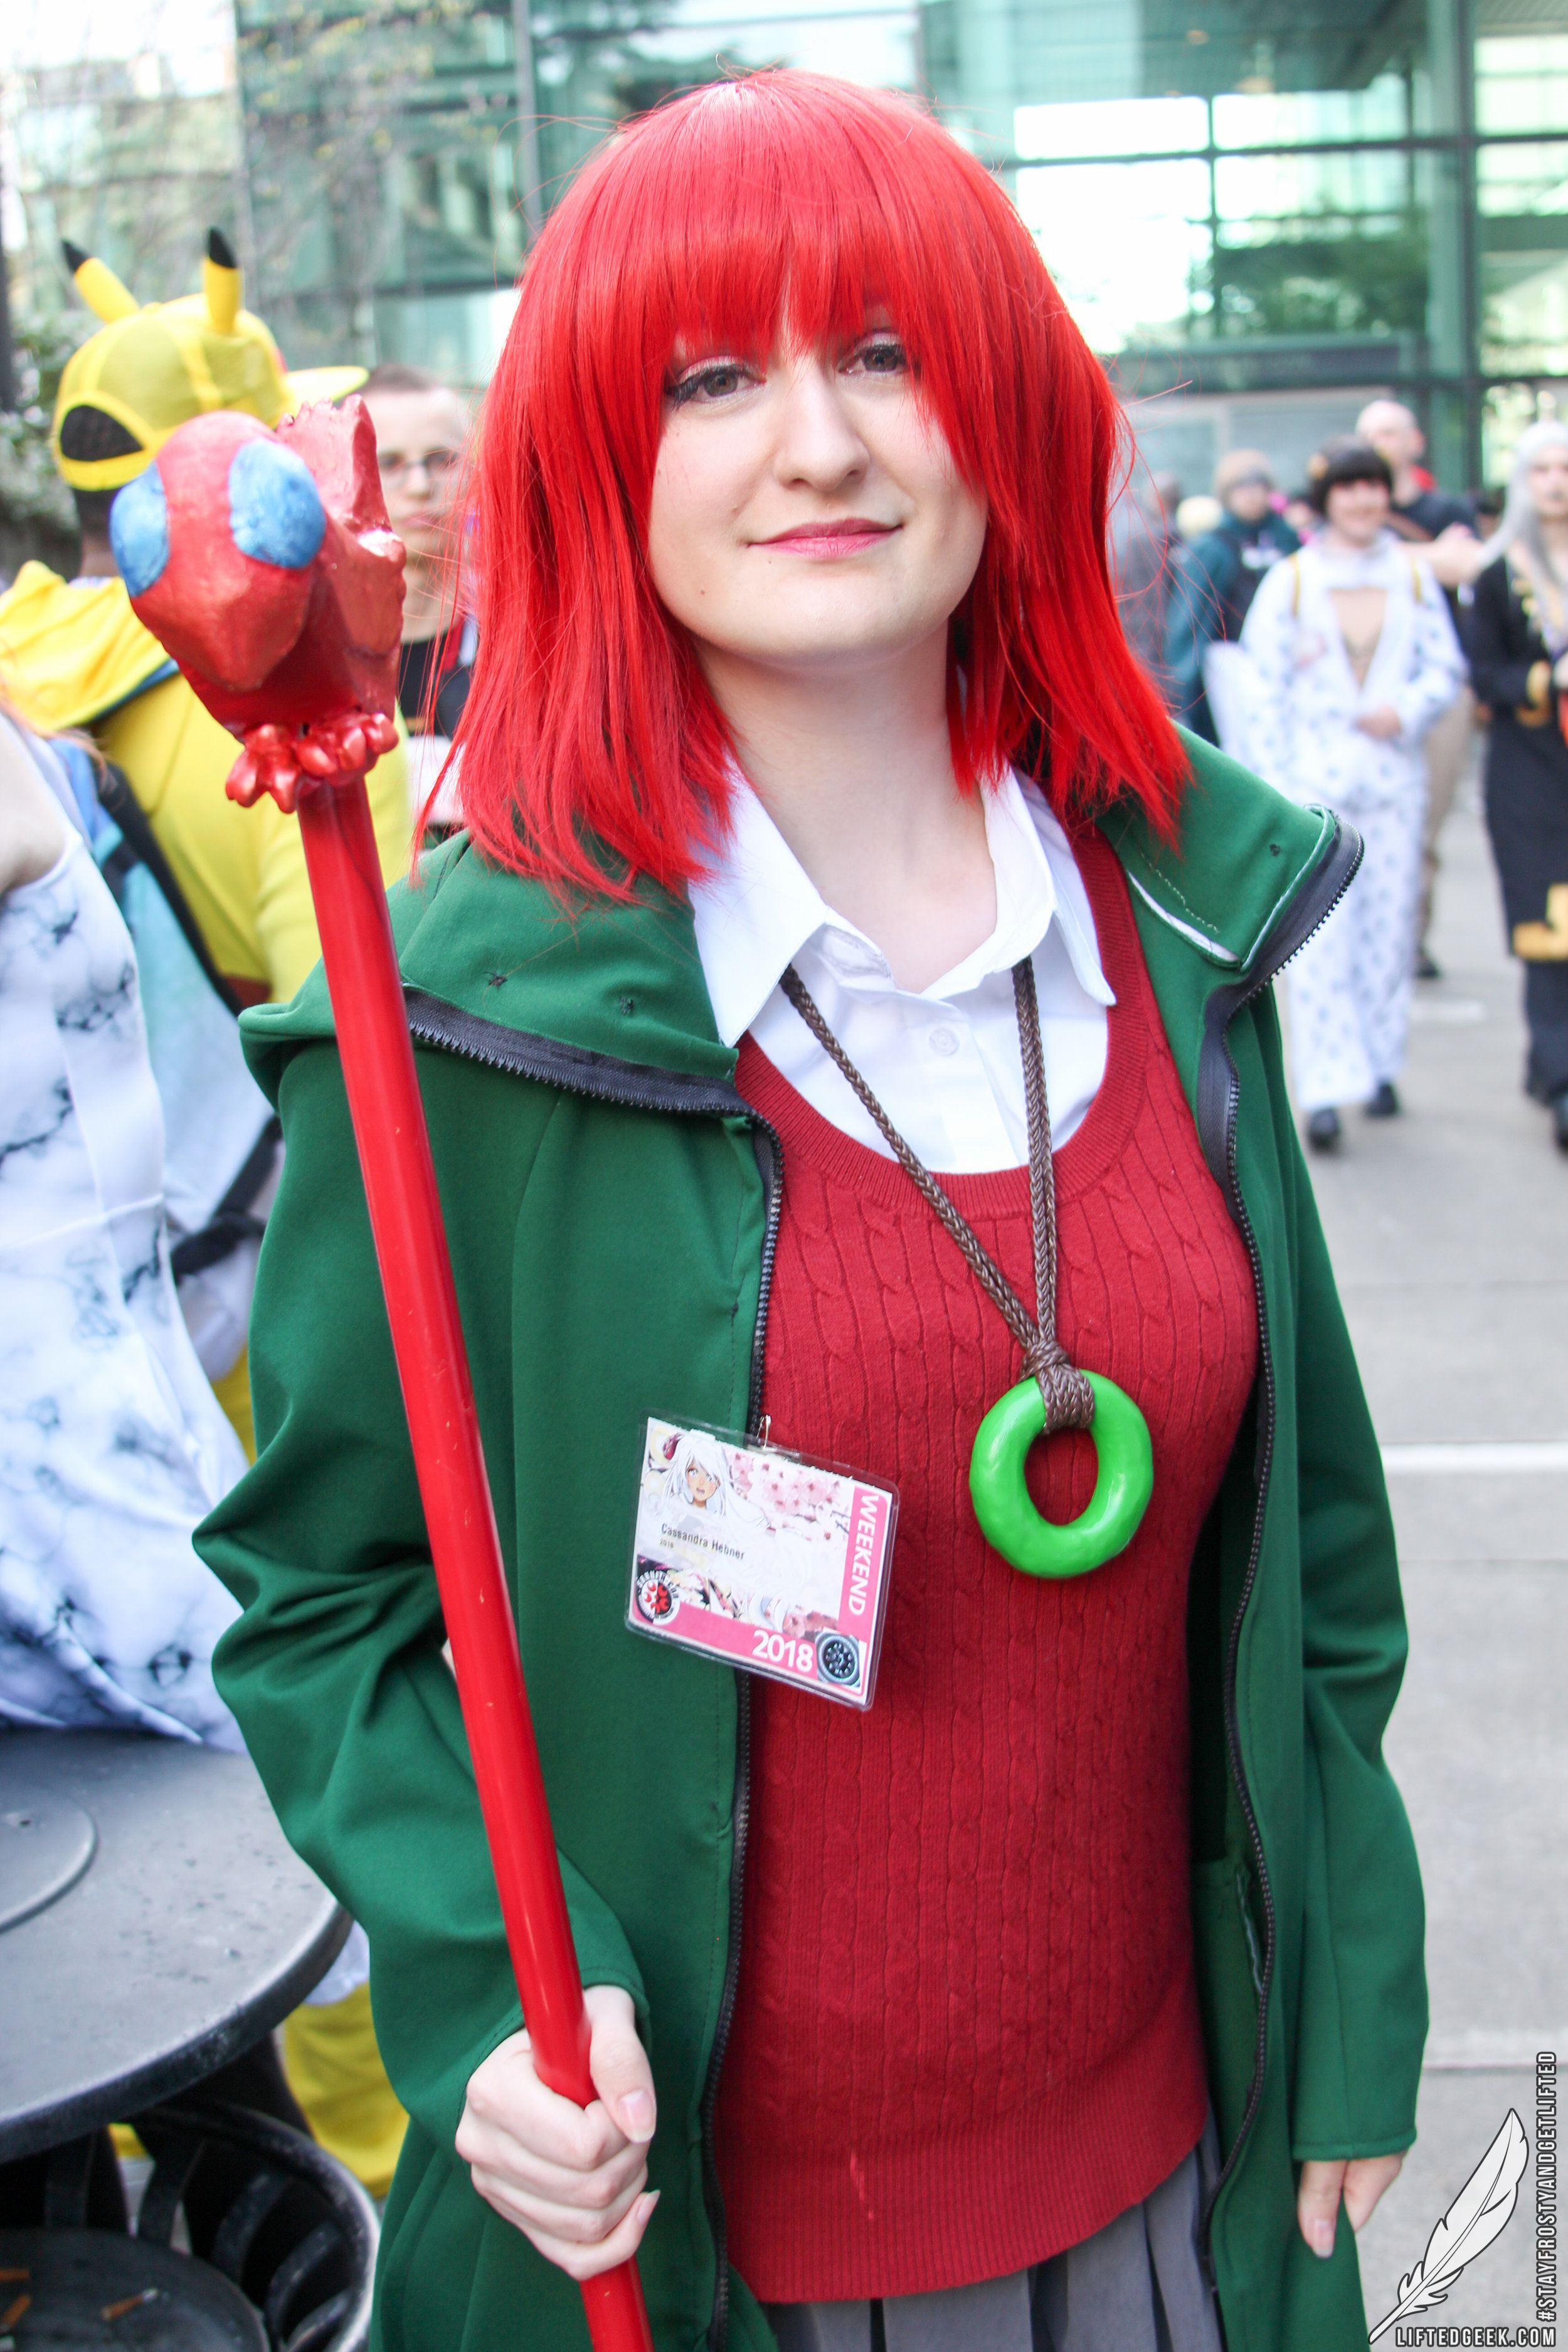 Sakuracon-cosplay-129.jpg